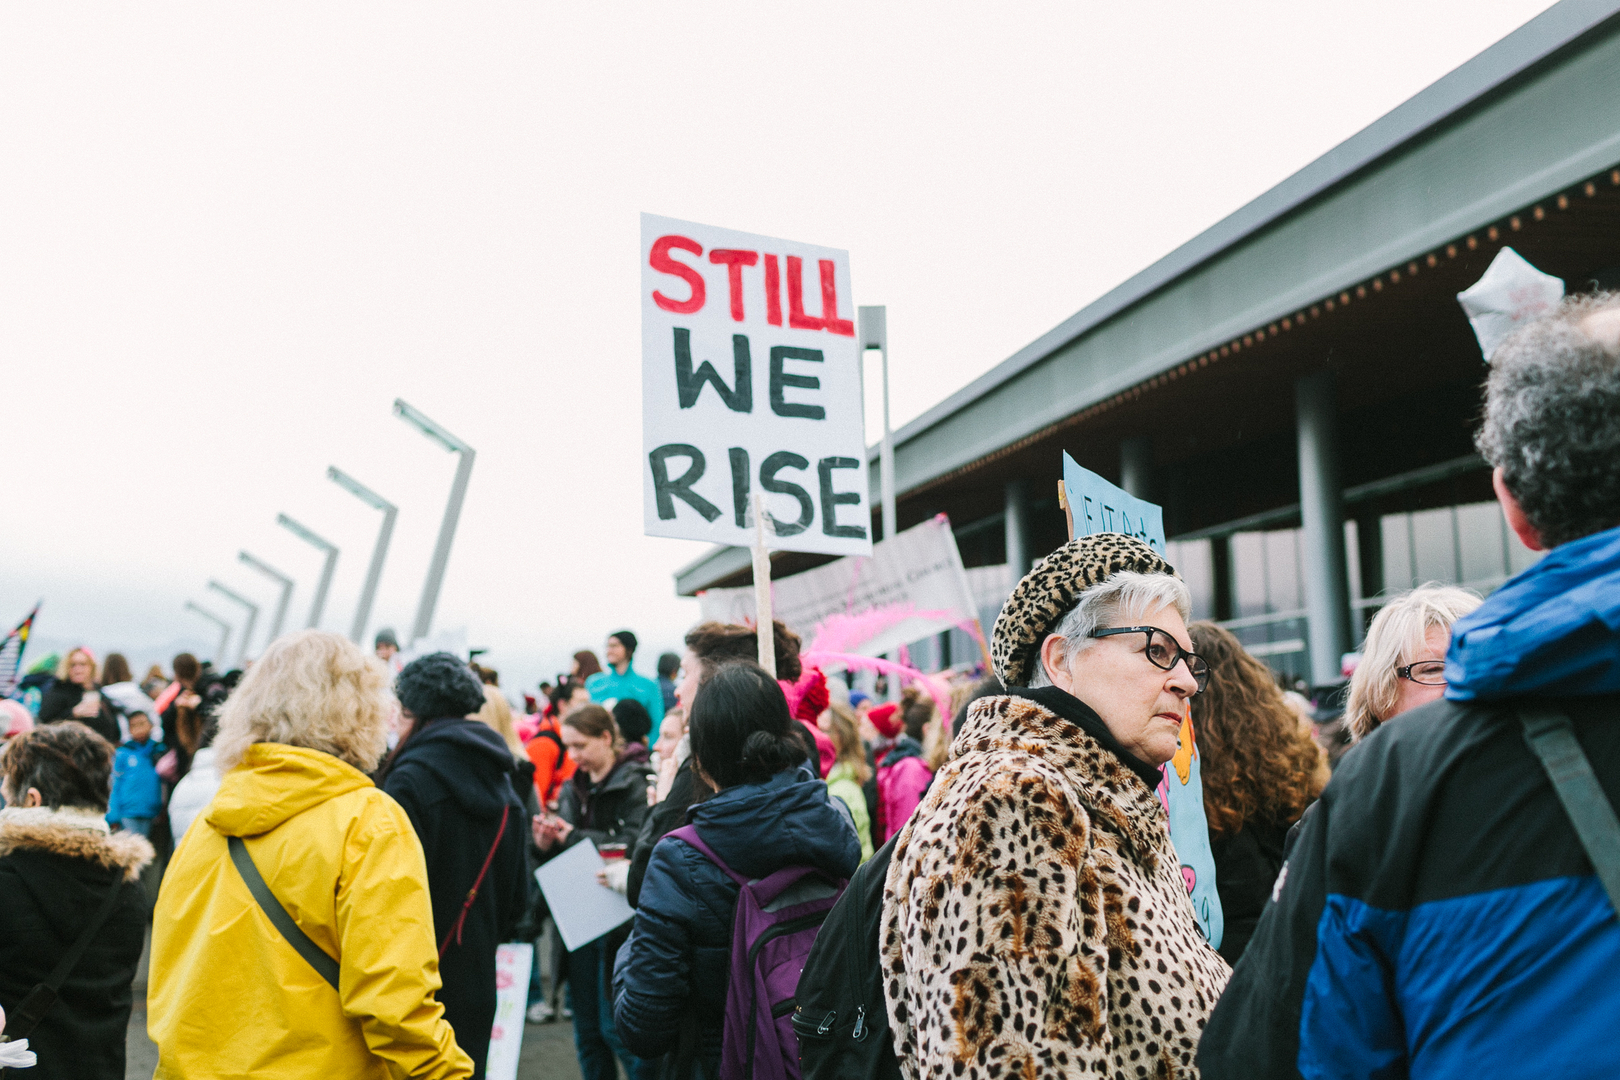 Women protest against violence during COVID-19